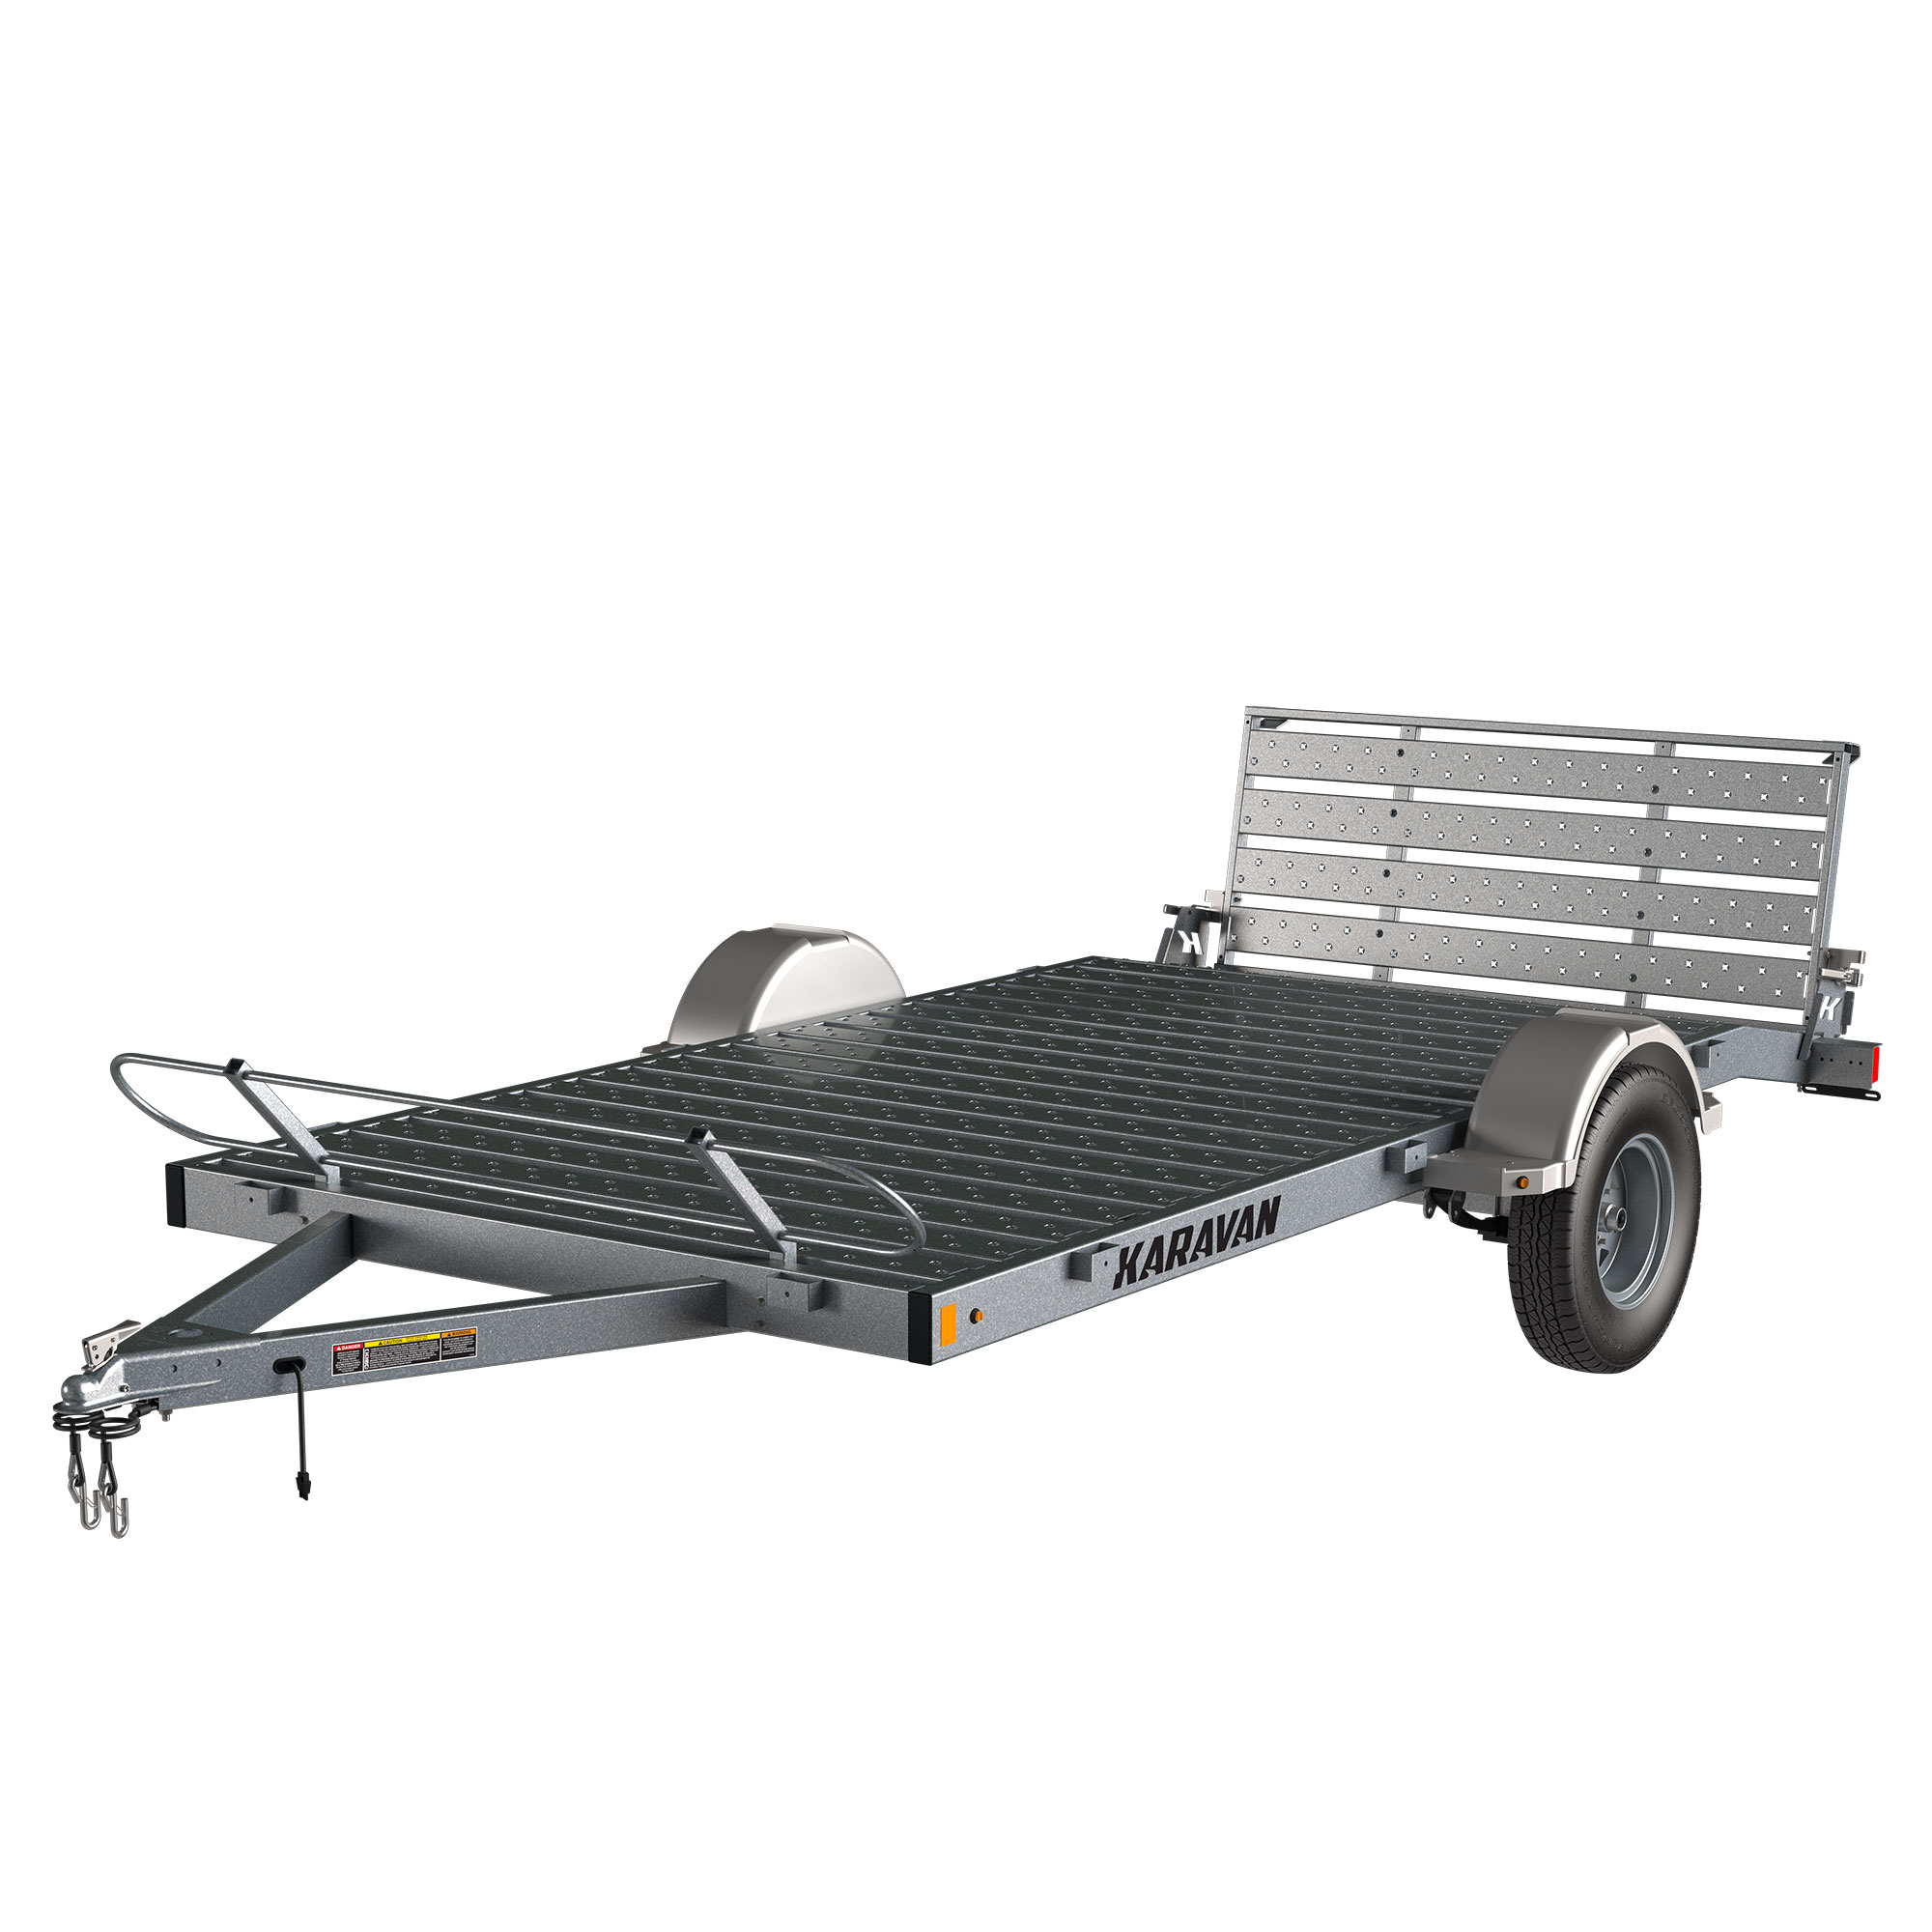 Karavan Trailer's 6 x 12 Ft. Steel Floor Utility Trailer, model number KUS-2990-72-12-GL